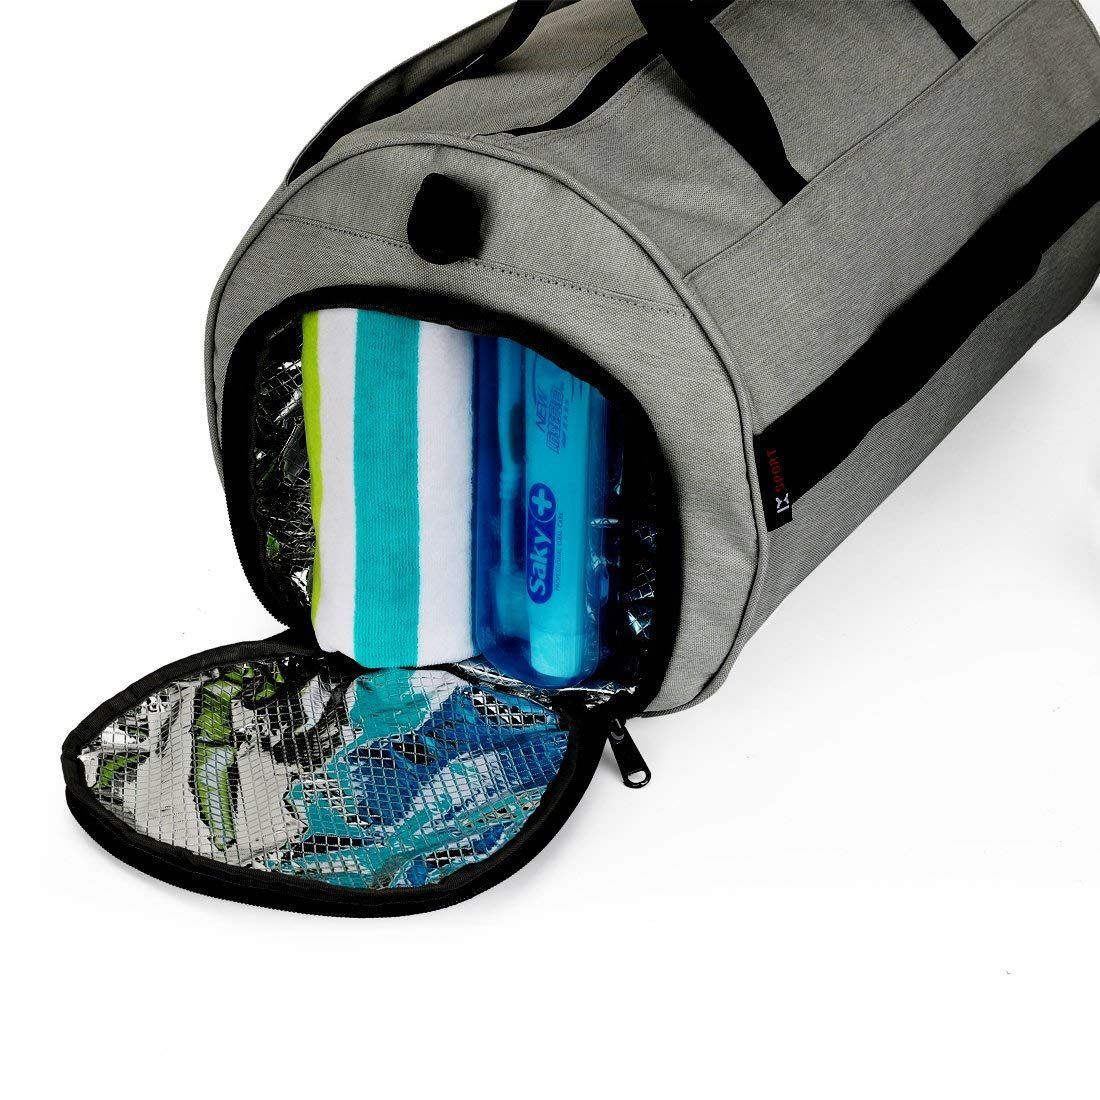 24f5053db68 Amazon.com   INOXTO Fitness Sport Small Gym Bag with Shoes Compartment  Waterproof Travel Duffel